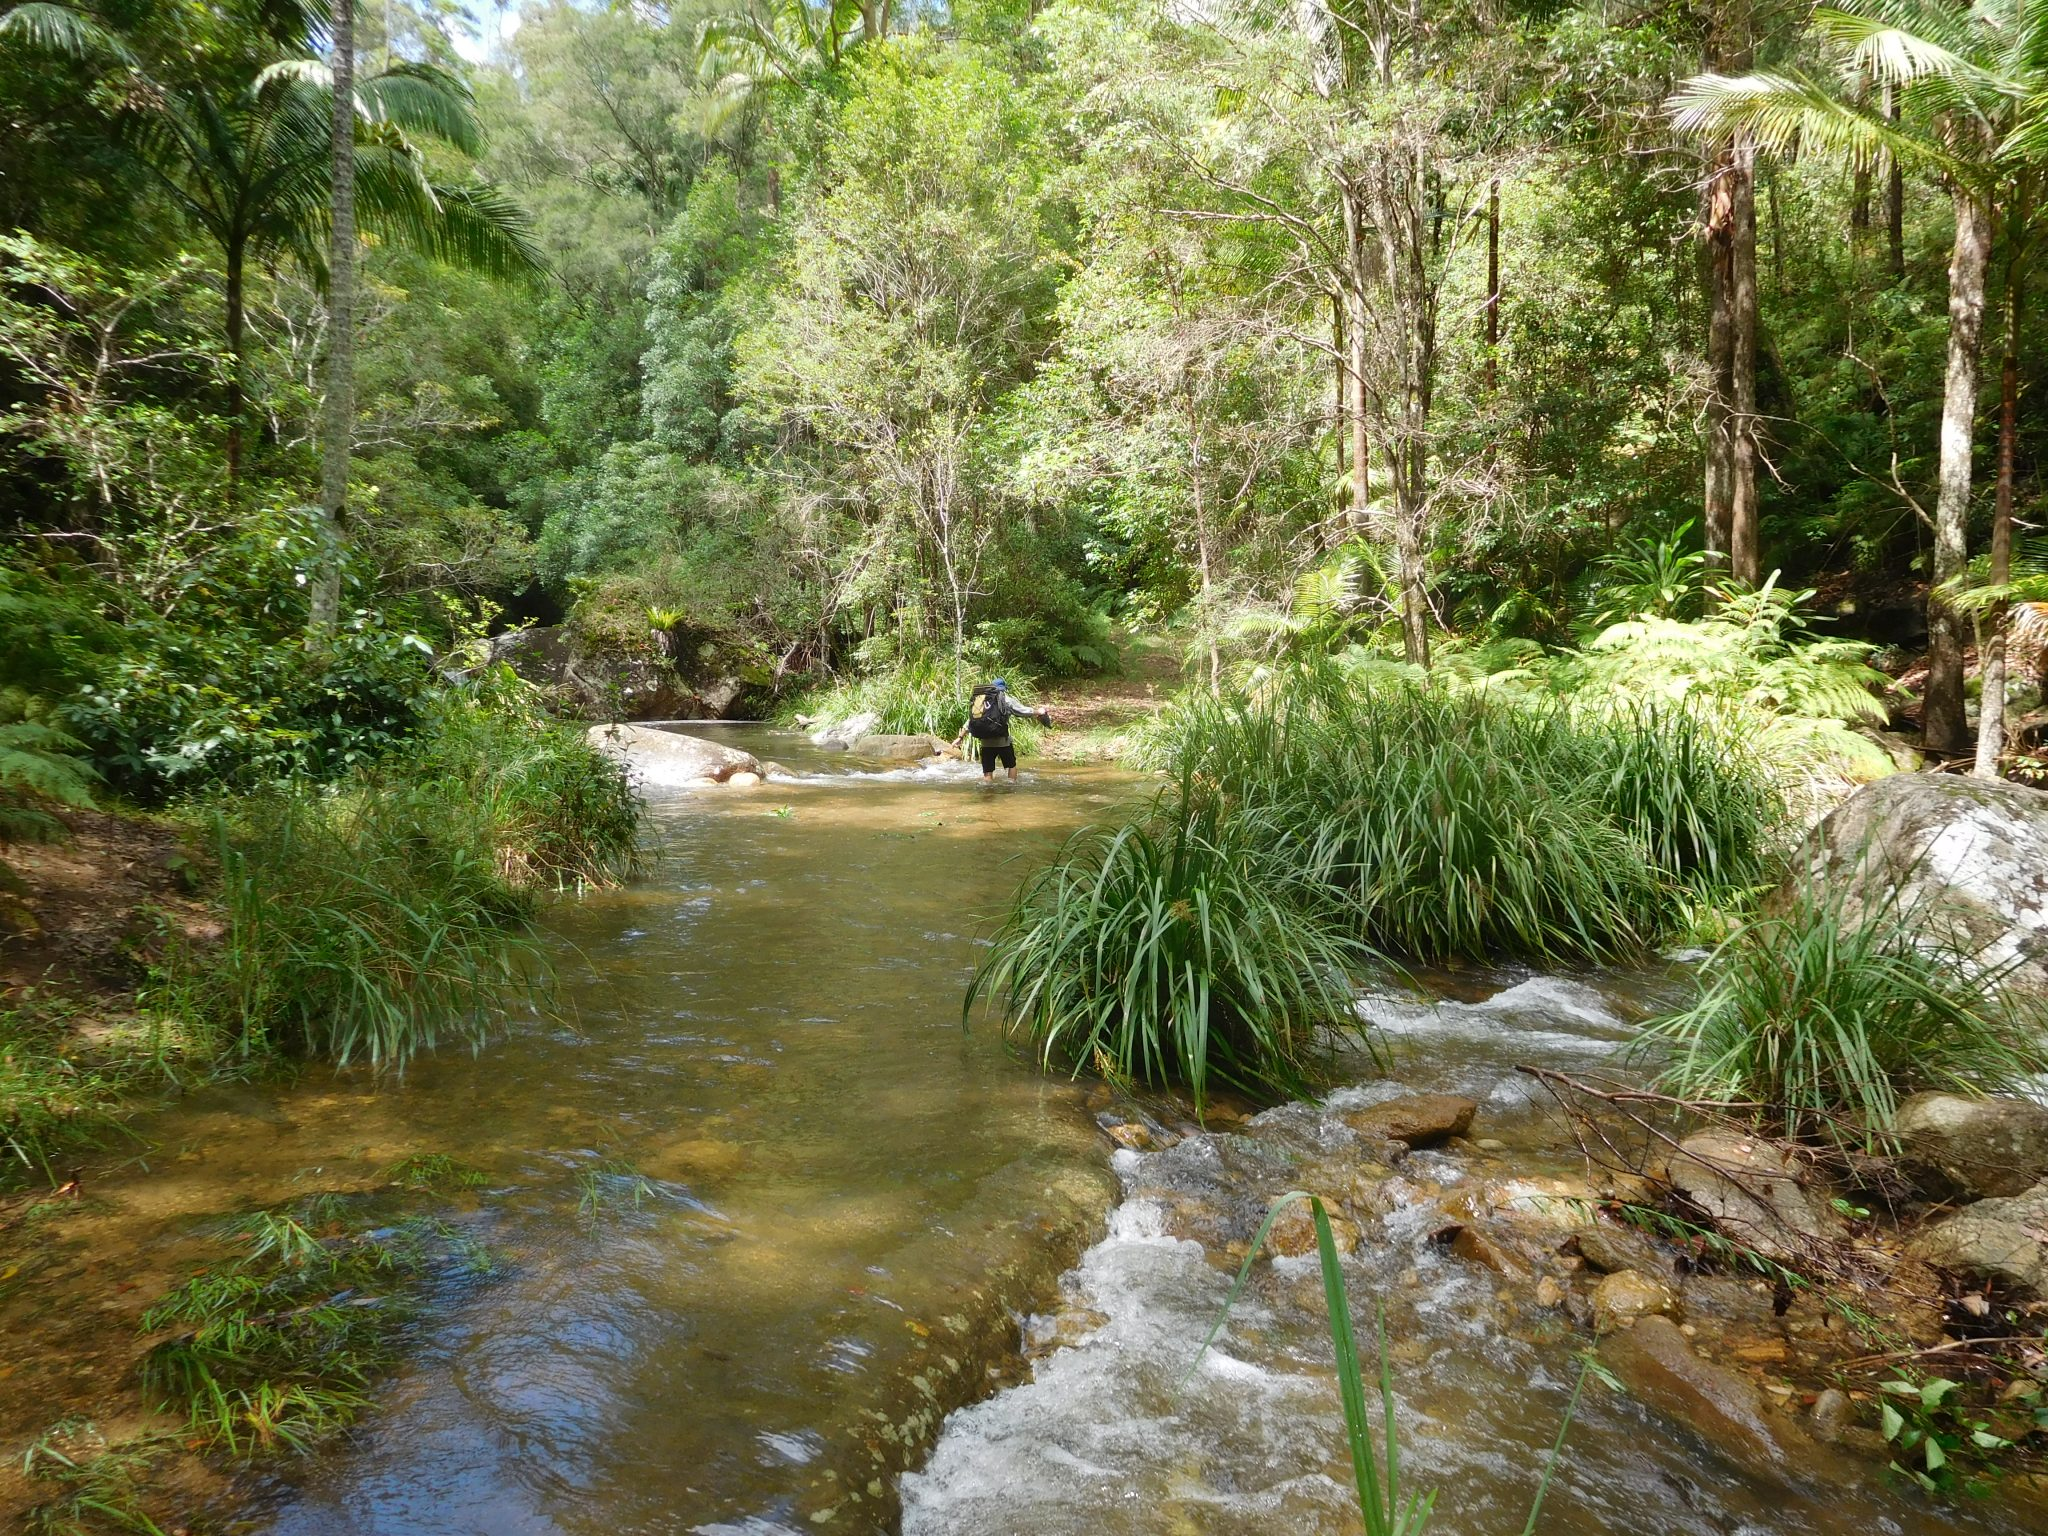 The coolness of the creeks on the way to Cronan Creek Cascades